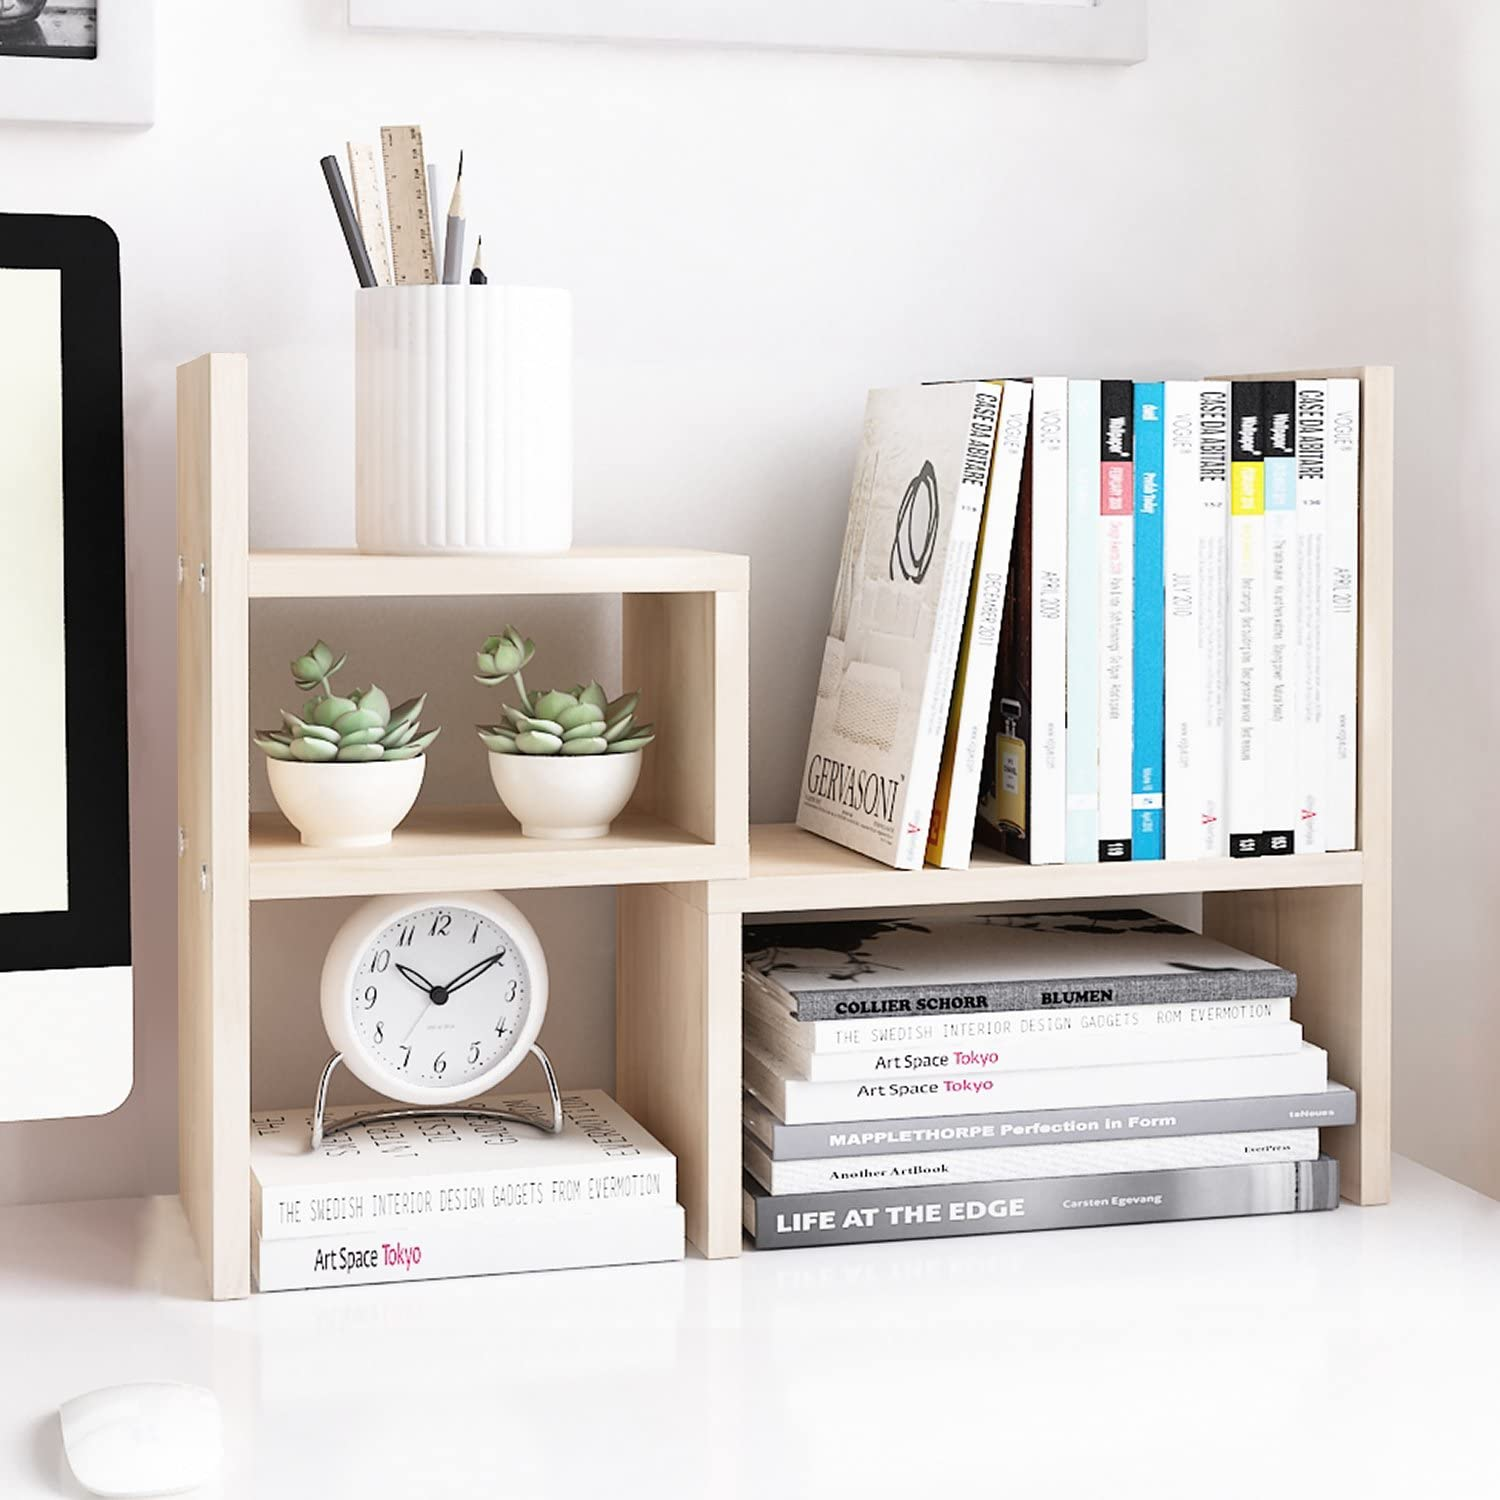 Jerry & Maggie - Desktop Organizer Office Storage Rack Adjustable Wood Display Shelf   Birthday Gifts - Toy - Home Decor   - Free Style Rotation Display - True Natural Stand Shelf White Wood Tone : Office Products